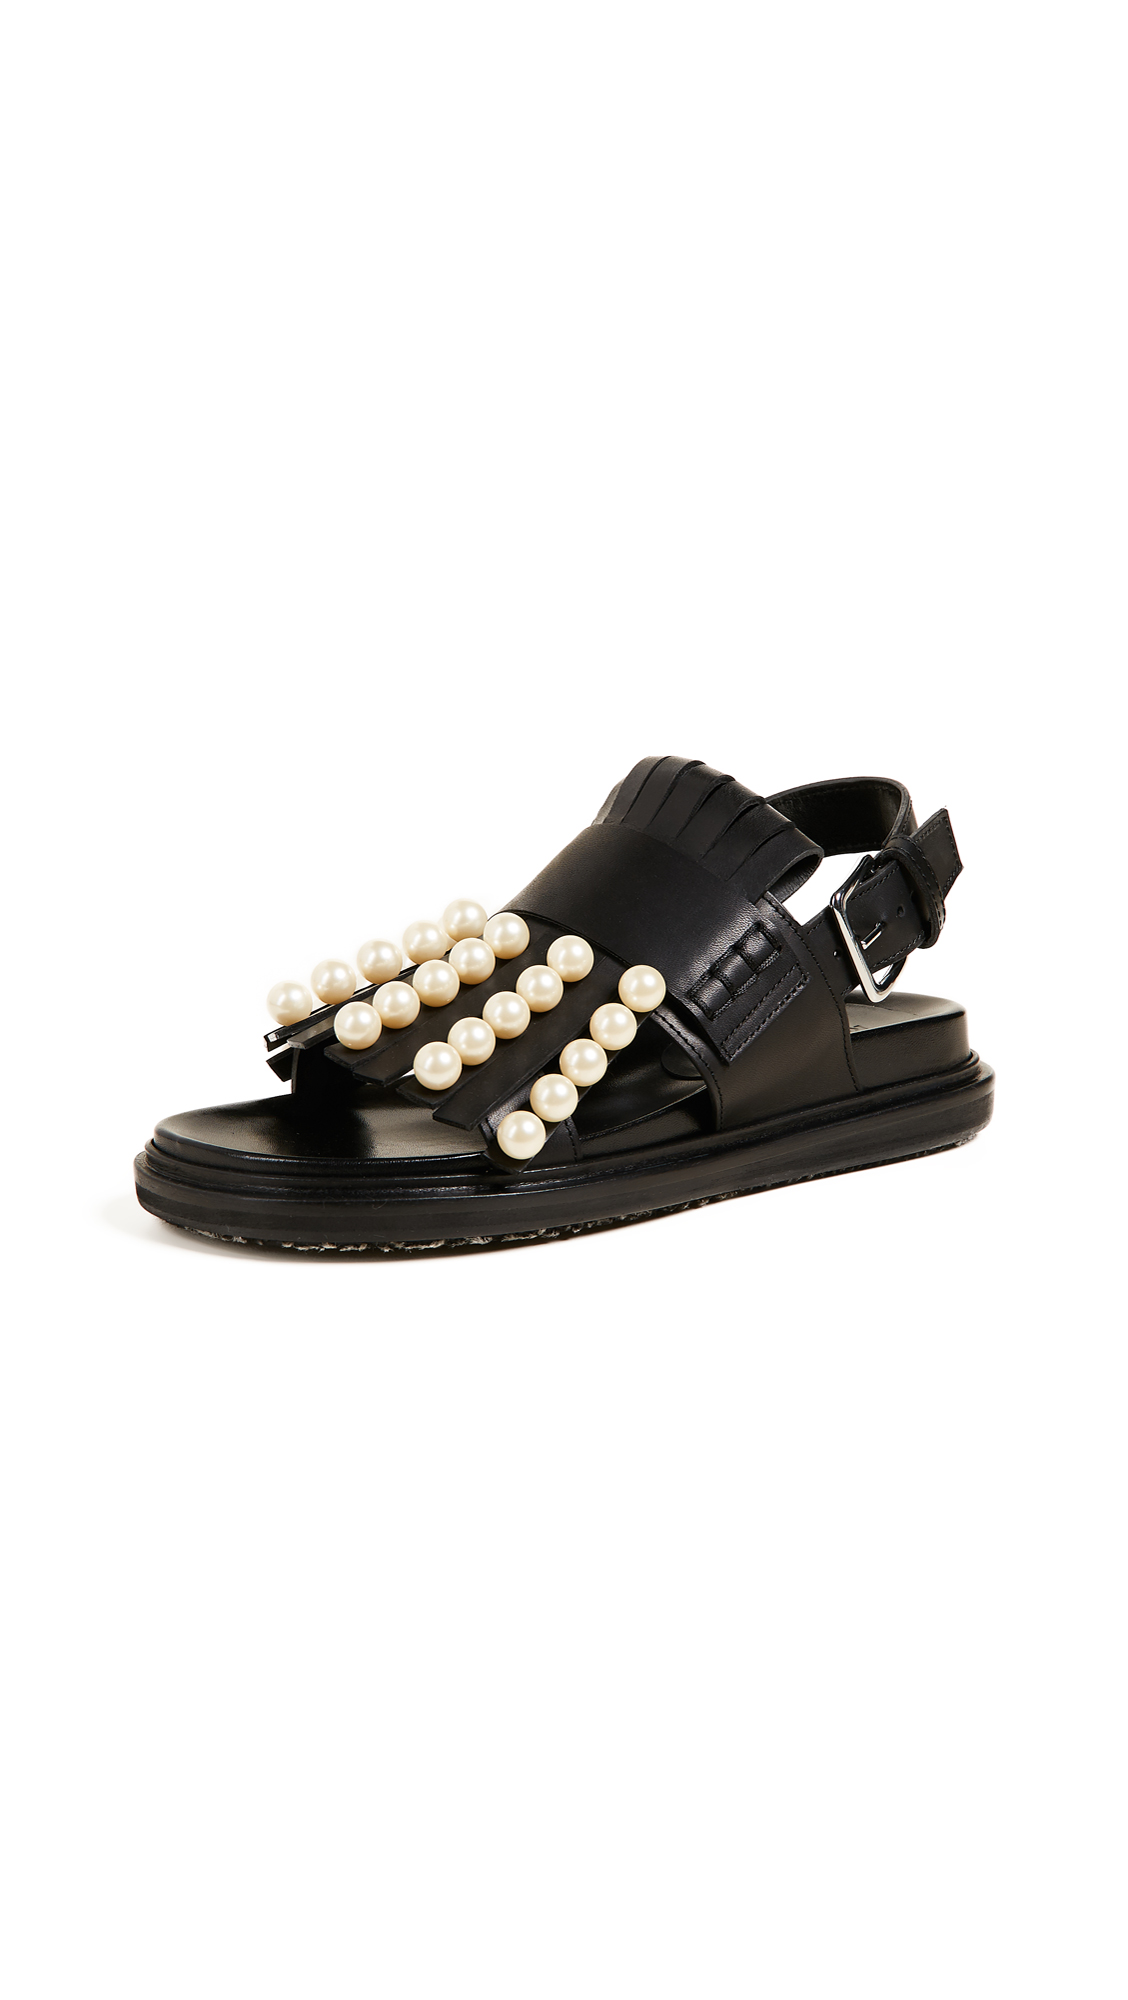 Marni Fussbett Sandals - Black